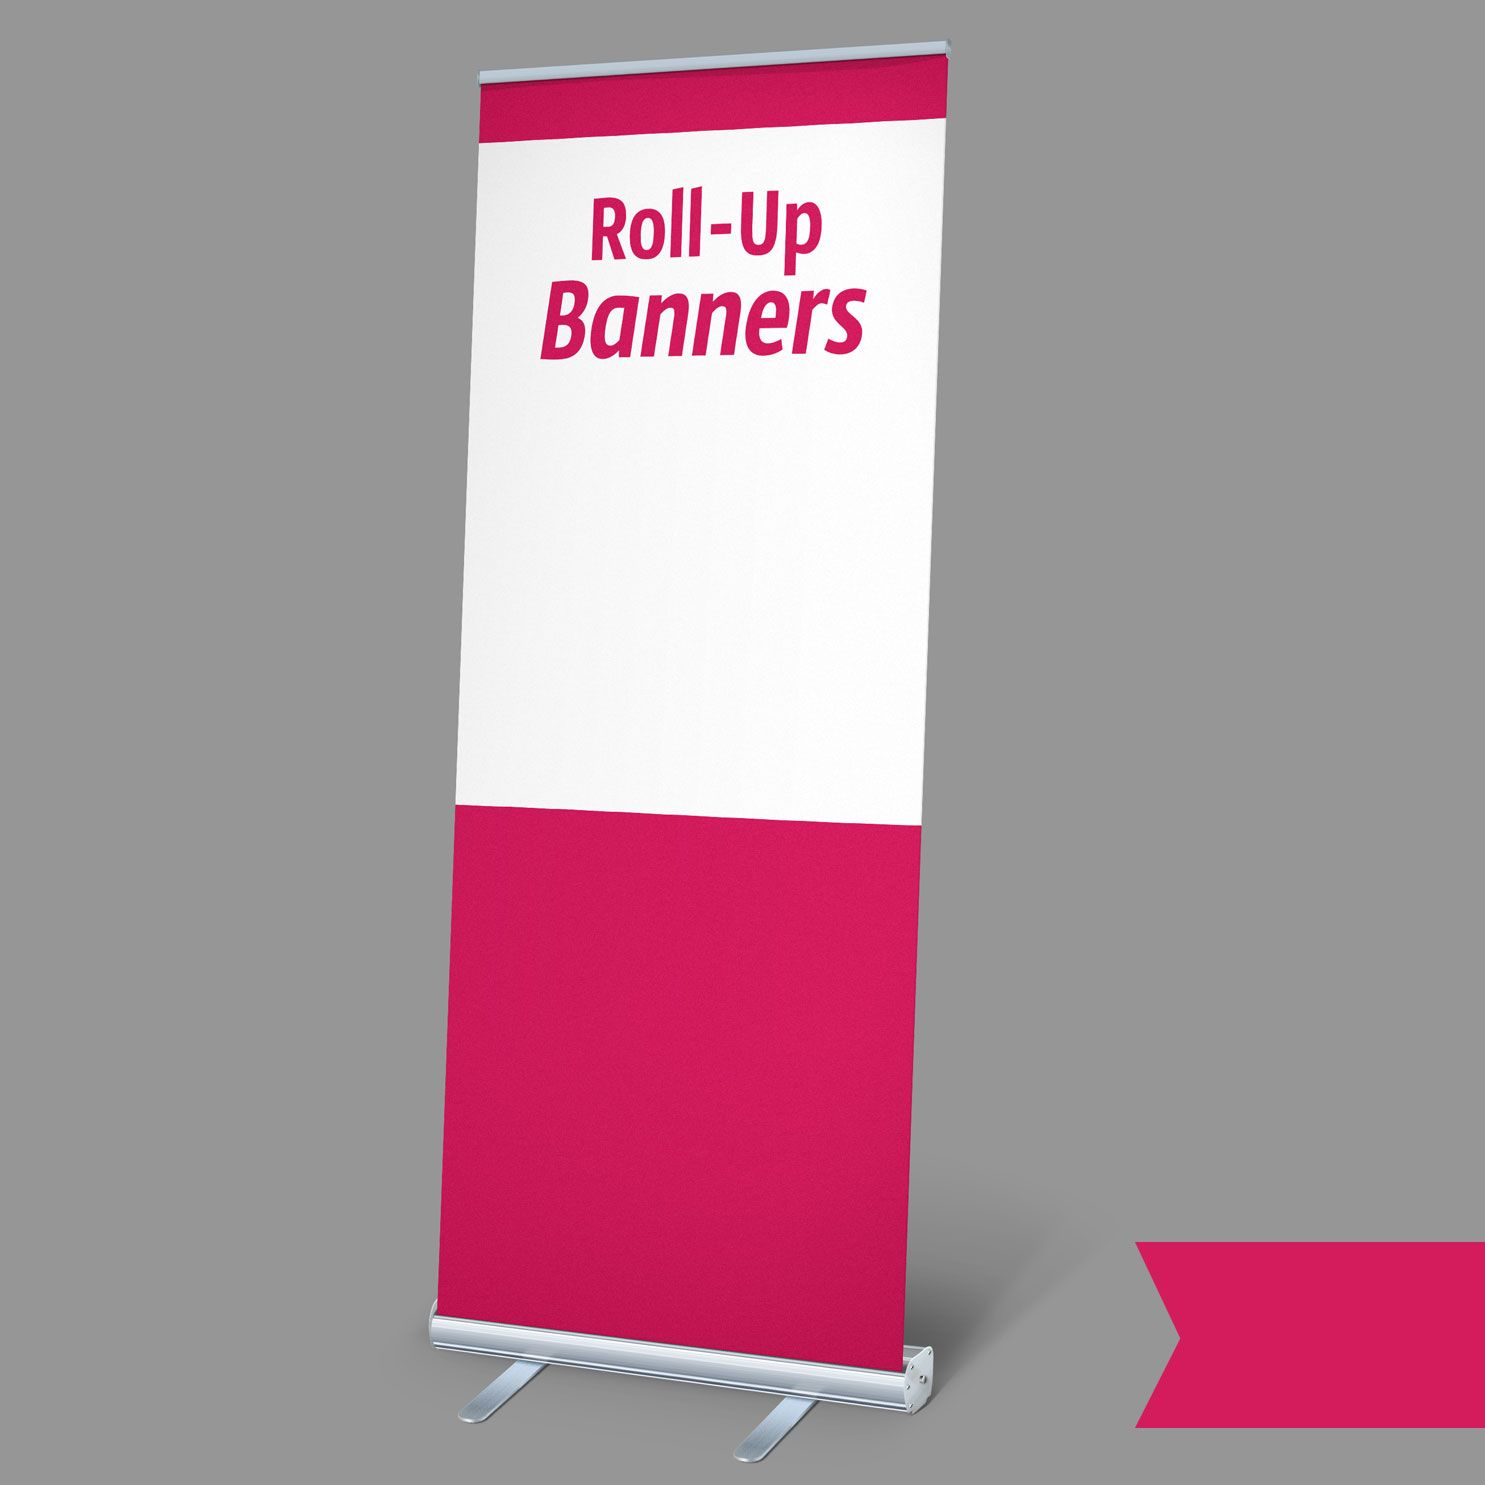 Roll Up Banner Verlichting Roll Up Banners Are The Most Common Print Marketing Medium